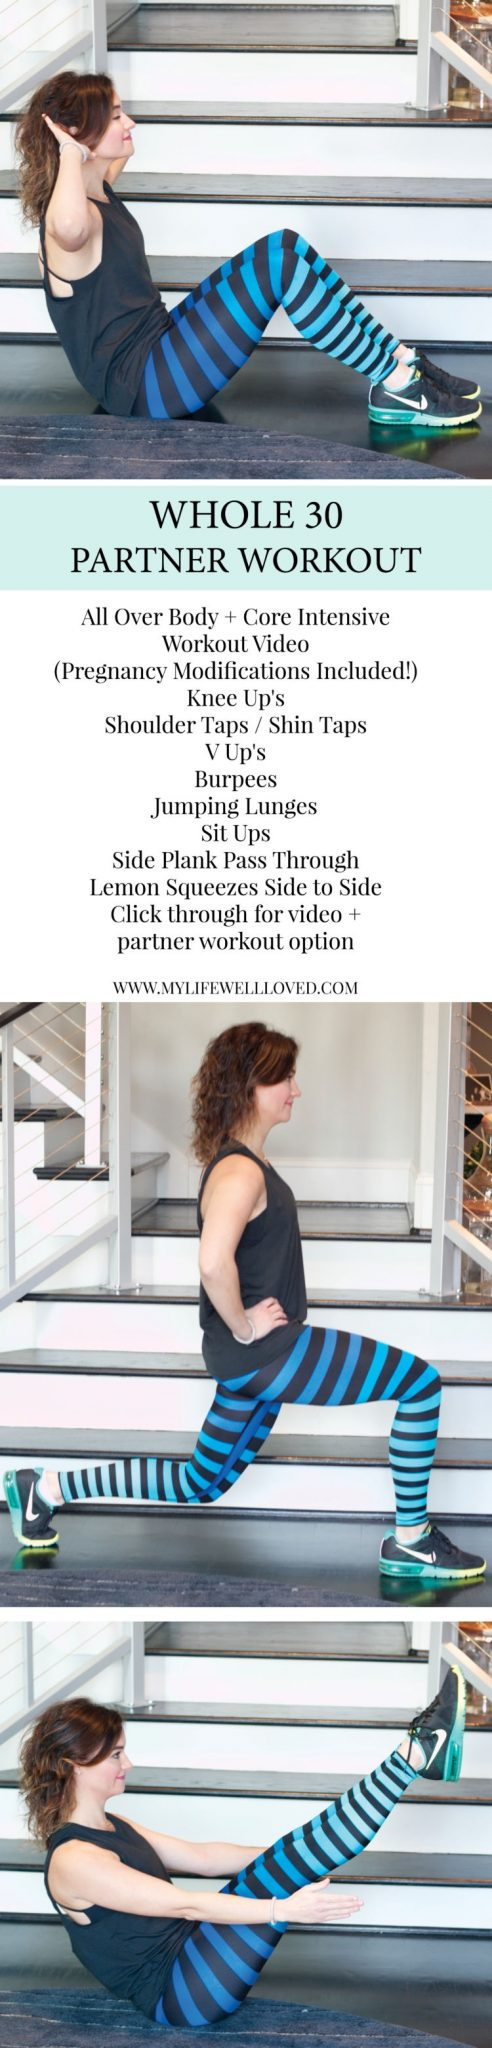 Partner Workout from ALabama blogger Heather of MyLifeWellLoved.com with pregnancy modifications for workout // athleisure